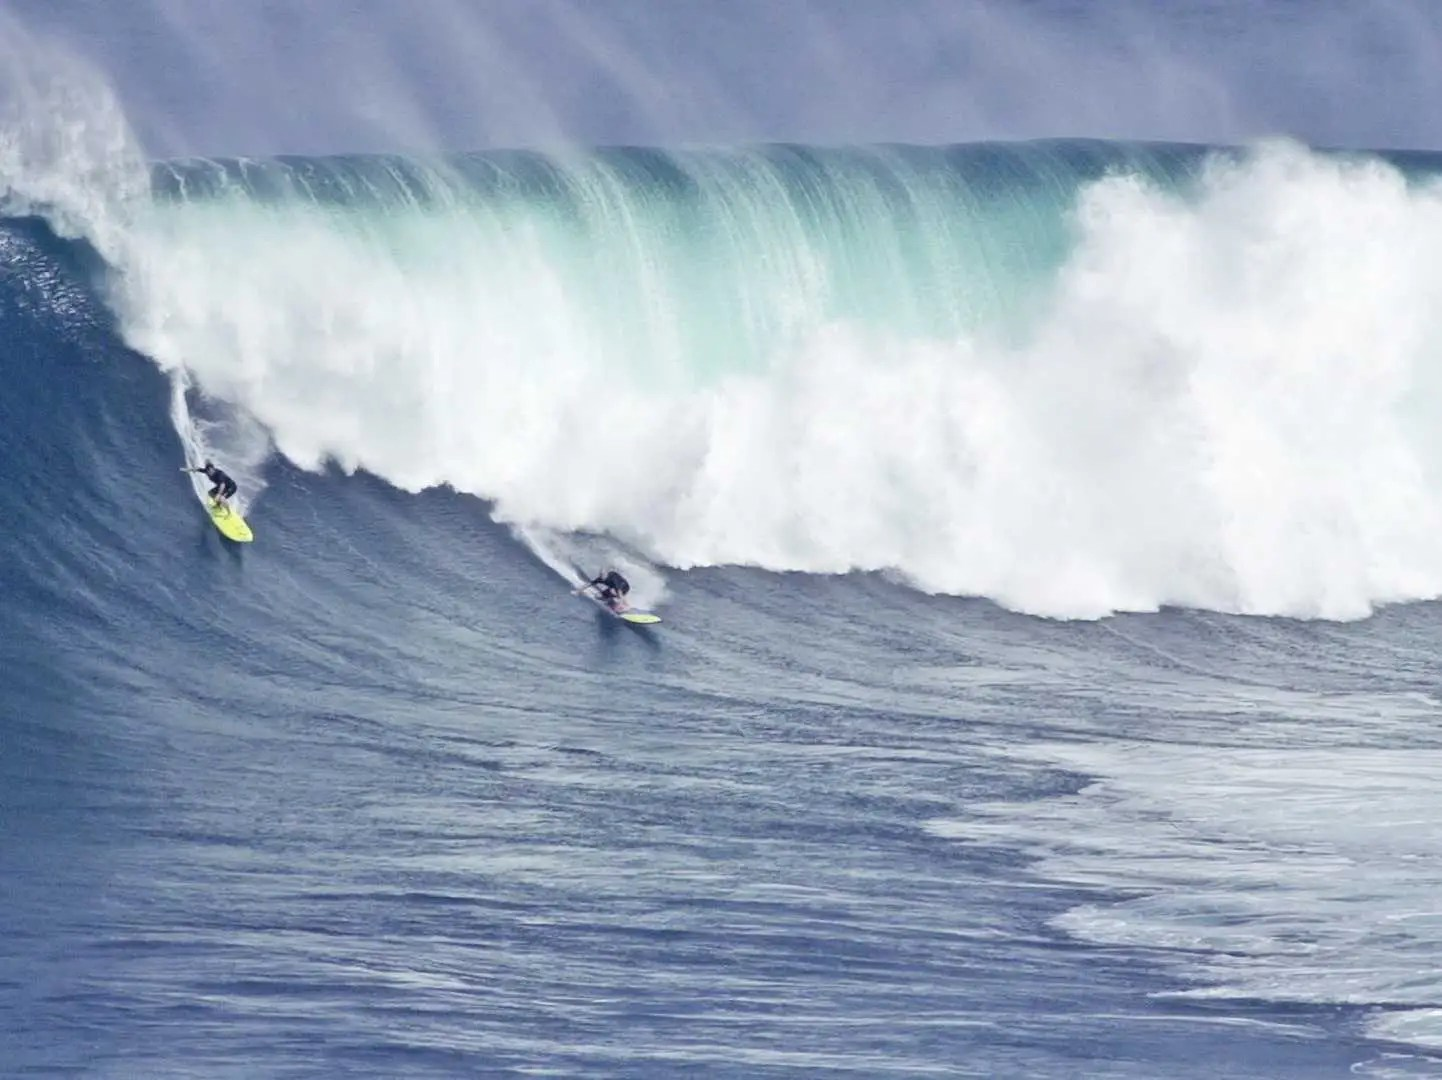 Surf Jaws (Pe'ahi in Hawaiian) in Maui, a spot that has consistently been ranked among the best for diehard surfers. Waves supposedly reach 120 feet.